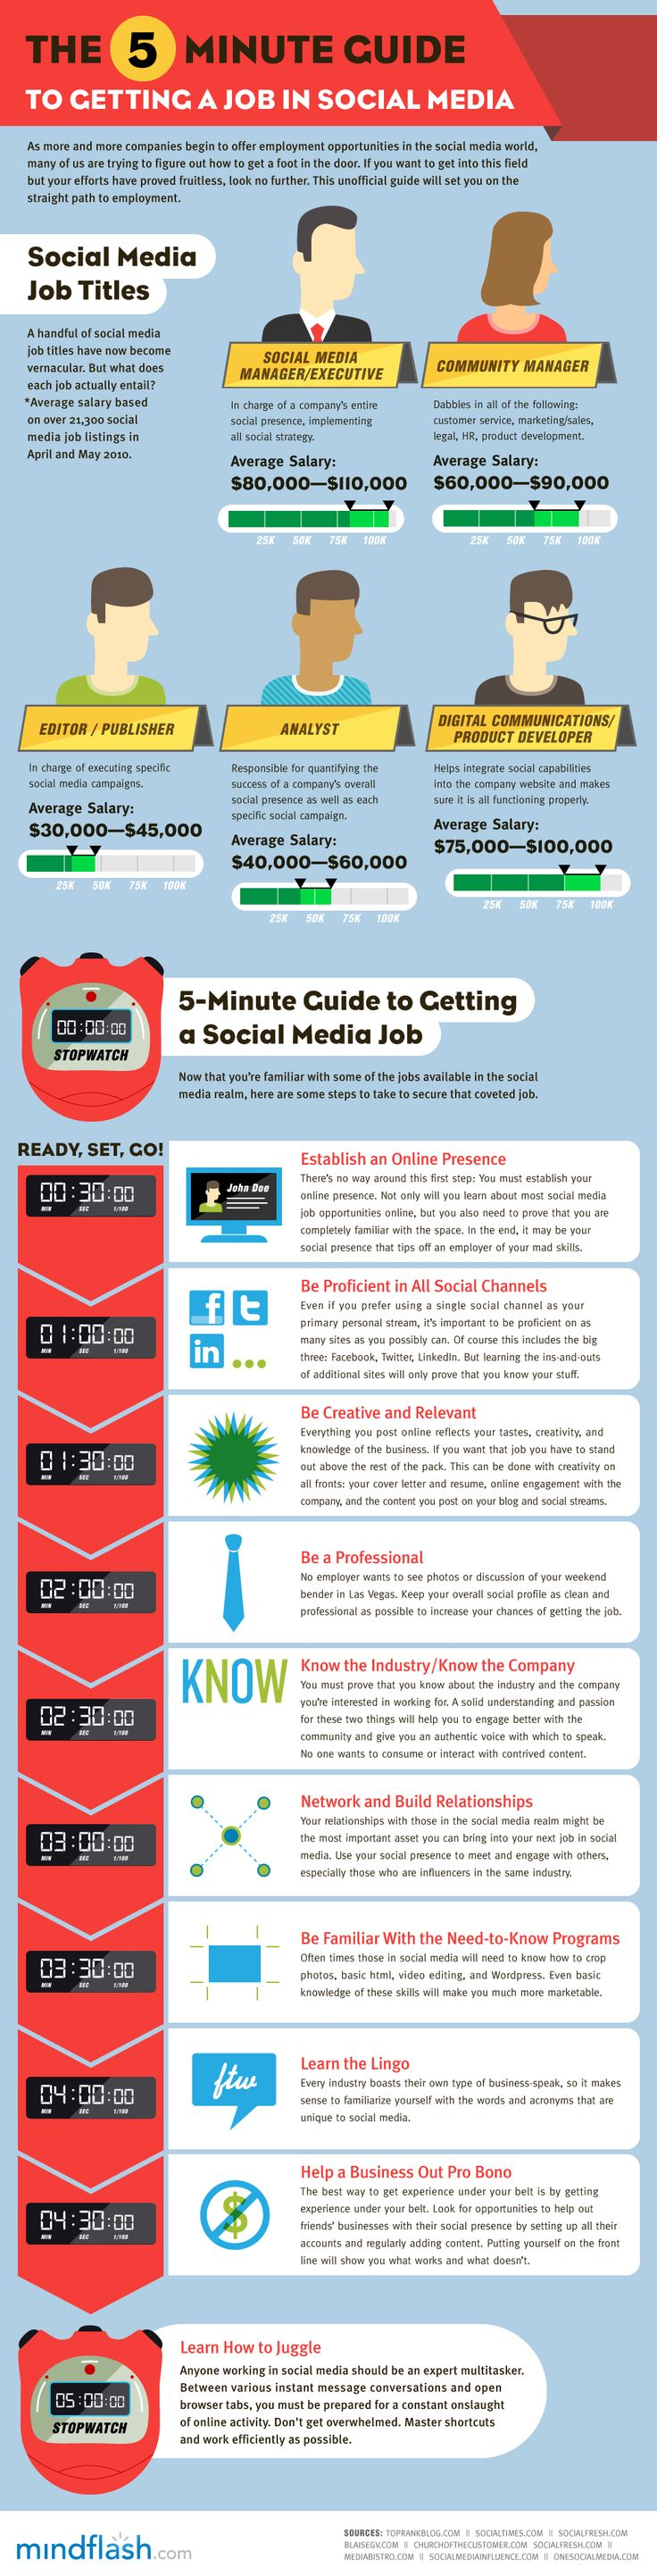 Good Infographics The 5 Minute Guide To Getting A Job In Social Media As More  And More Companies Begin To Offer Employment Opportunities In The Social  Media ...